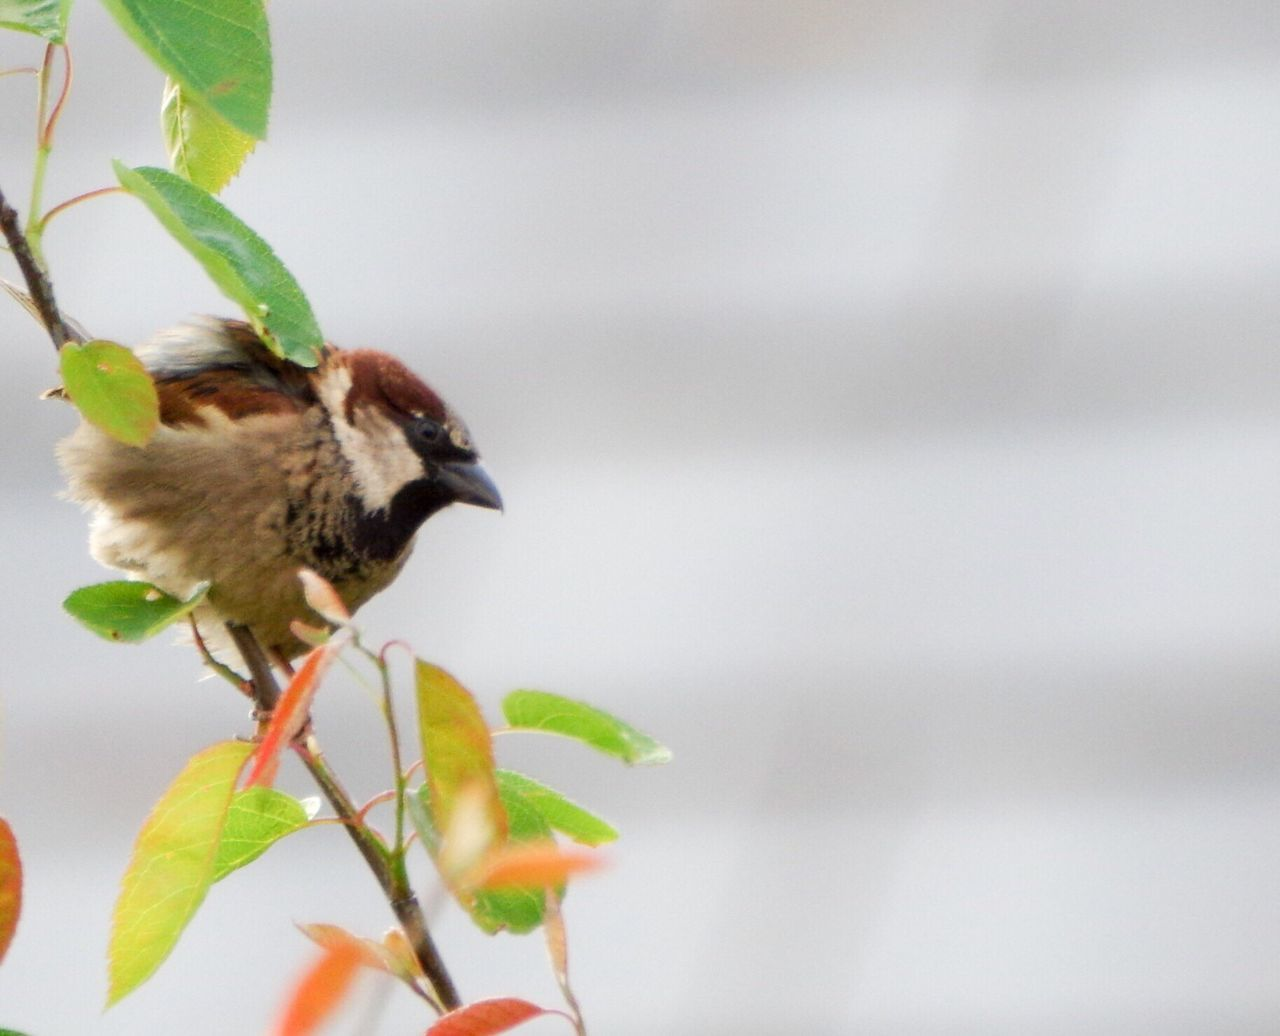 leaf, animals in the wild, animal themes, plant, nature, bird, growth, one animal, no people, animal wildlife, day, perching, outdoors, beauty in nature, close-up